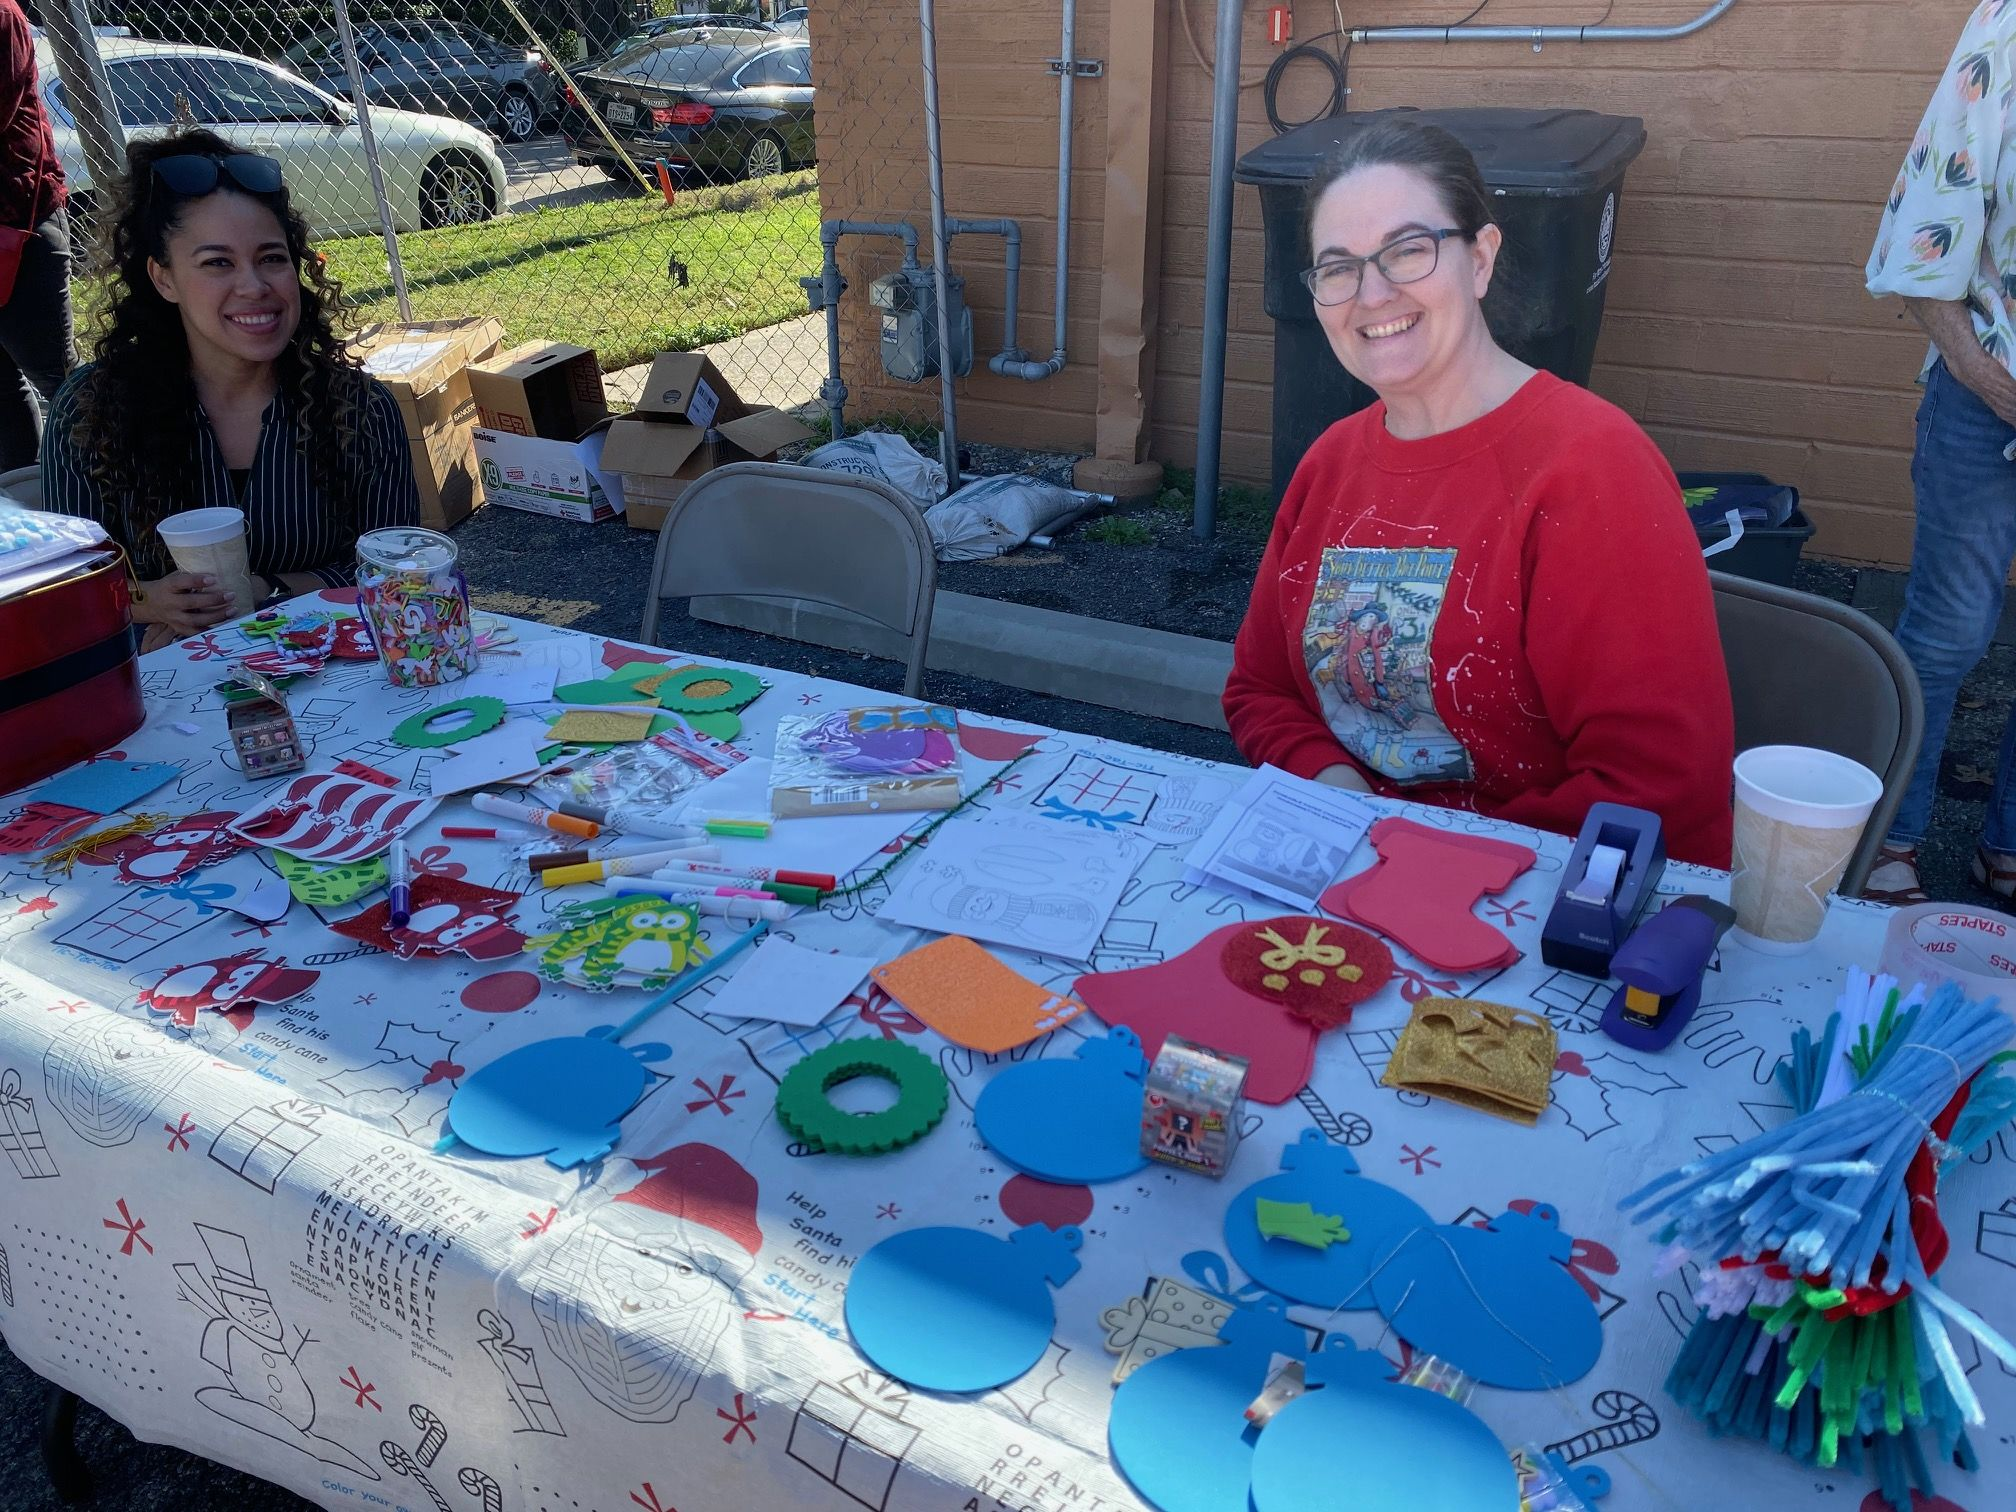 Two volunteers sit at a craft table